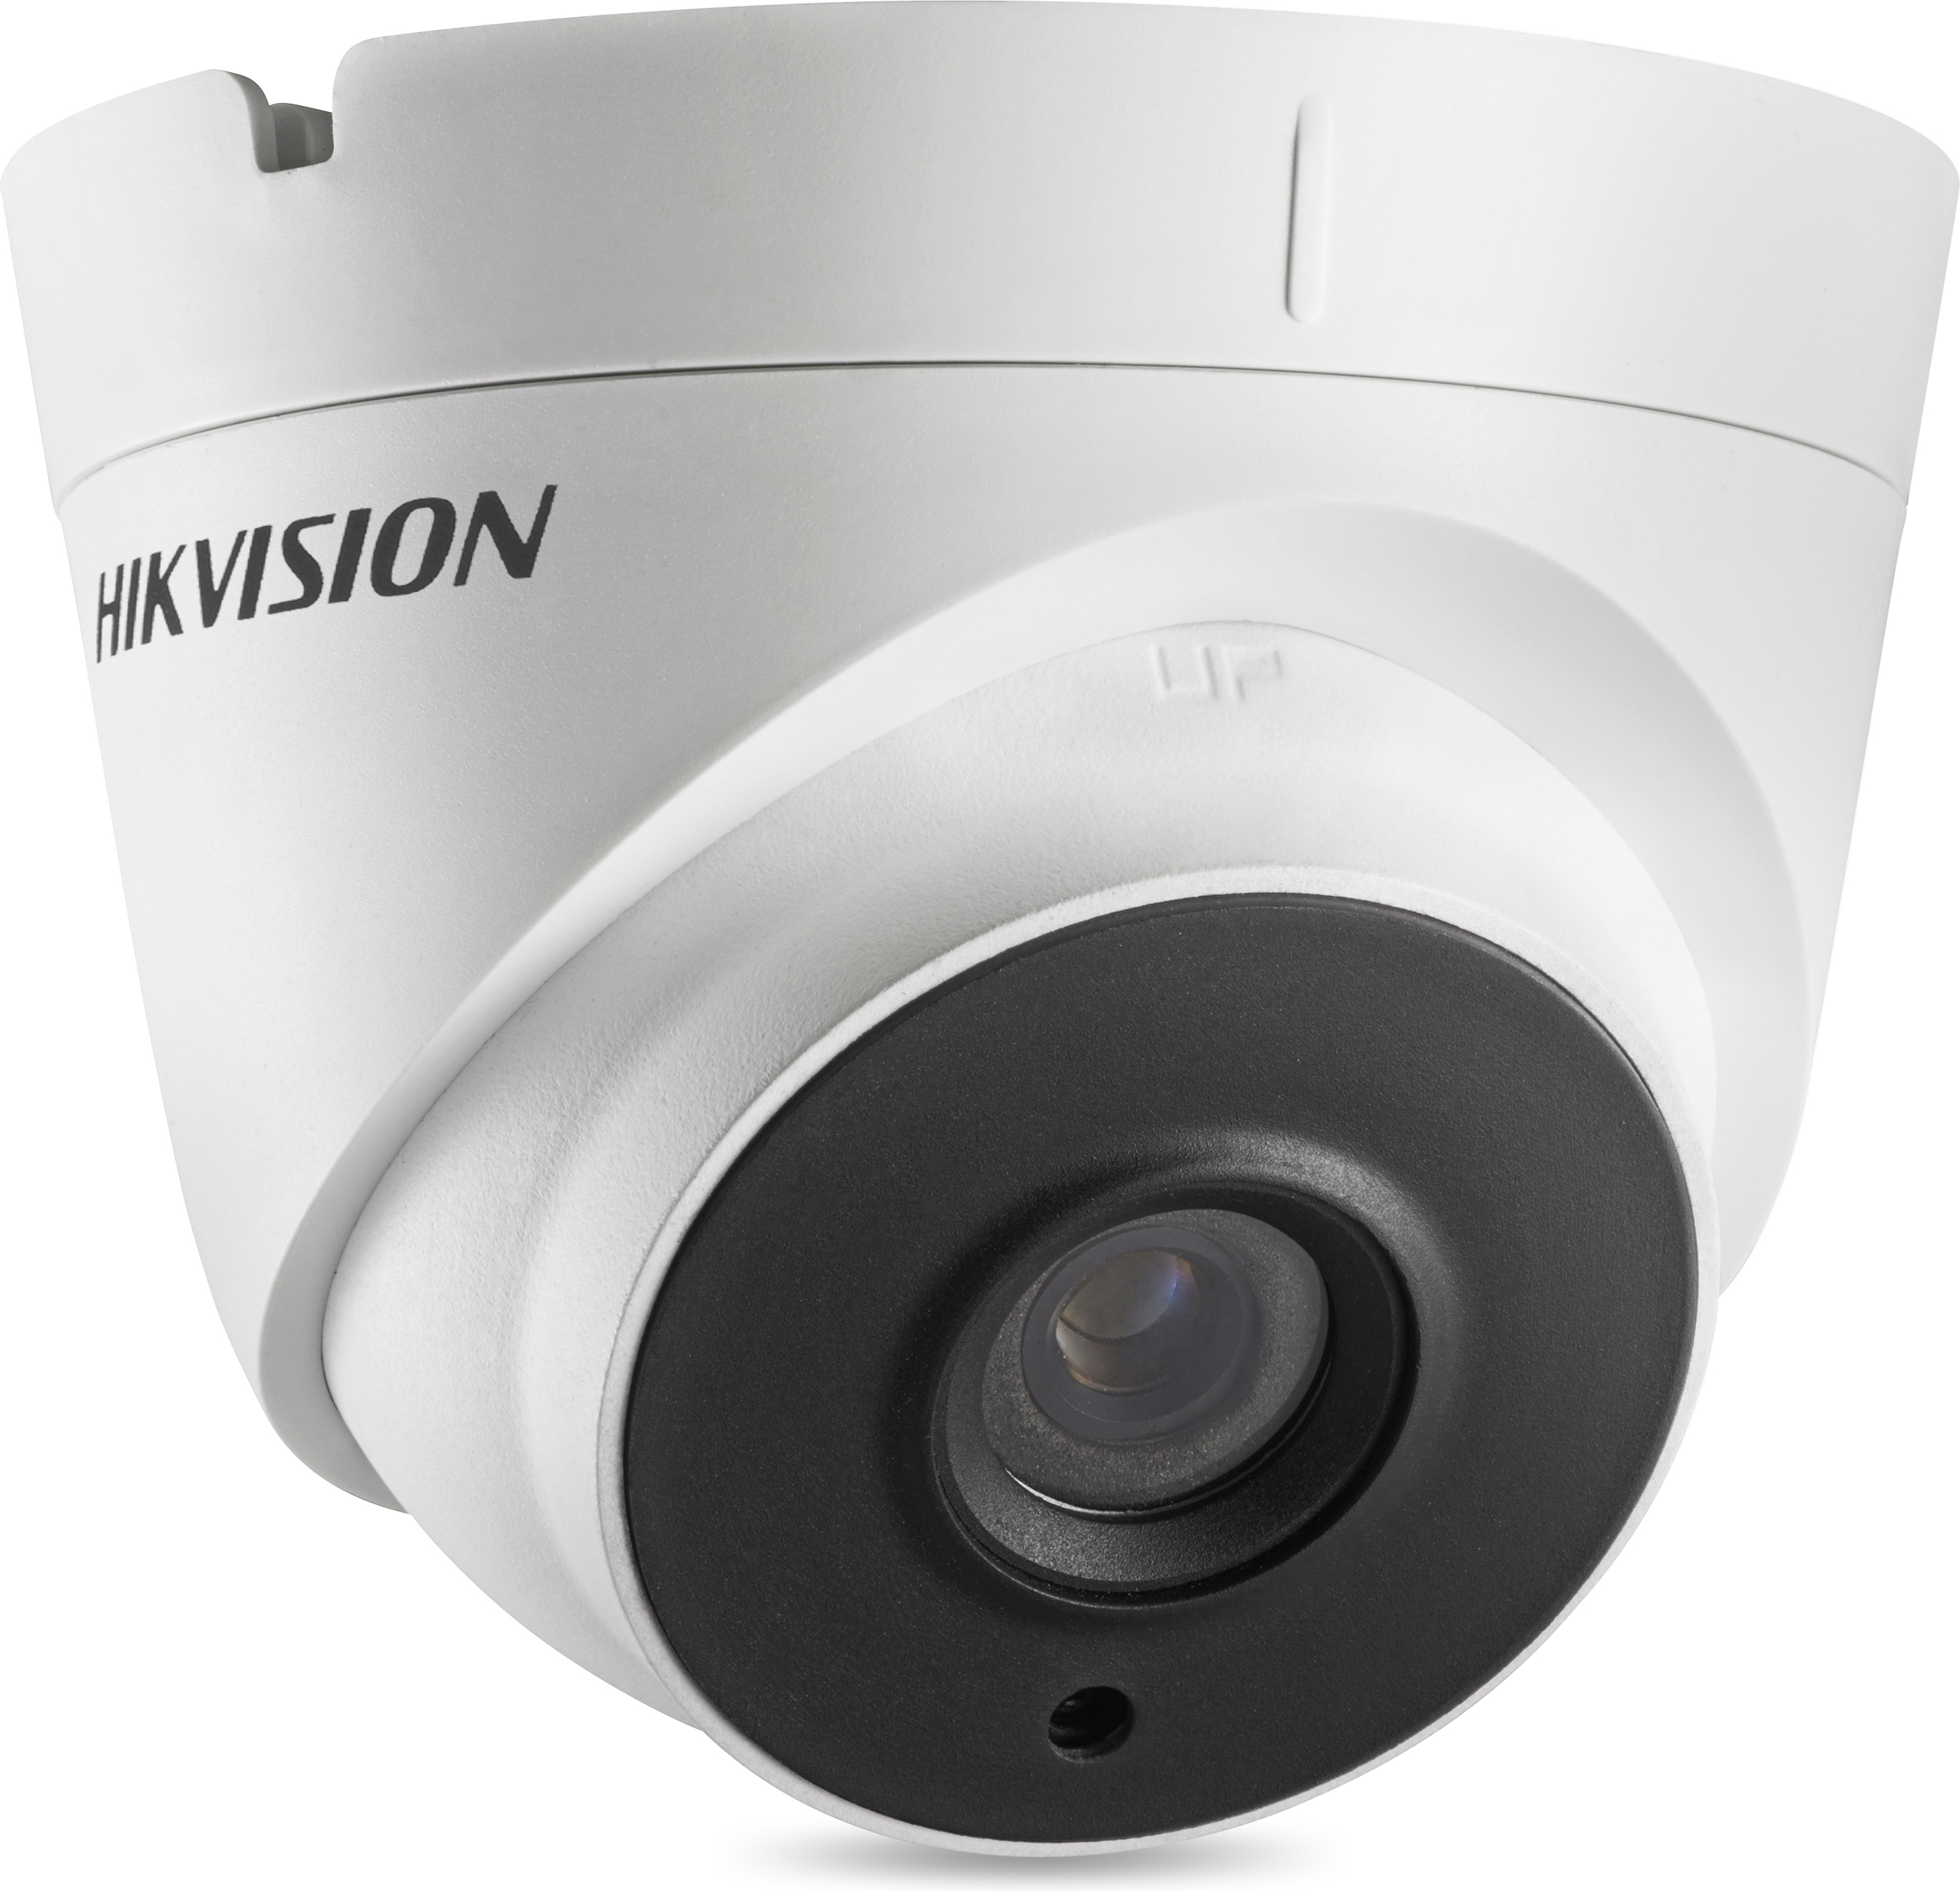 Hikvision DS-2CE56D0T-IT1F 3.6mm